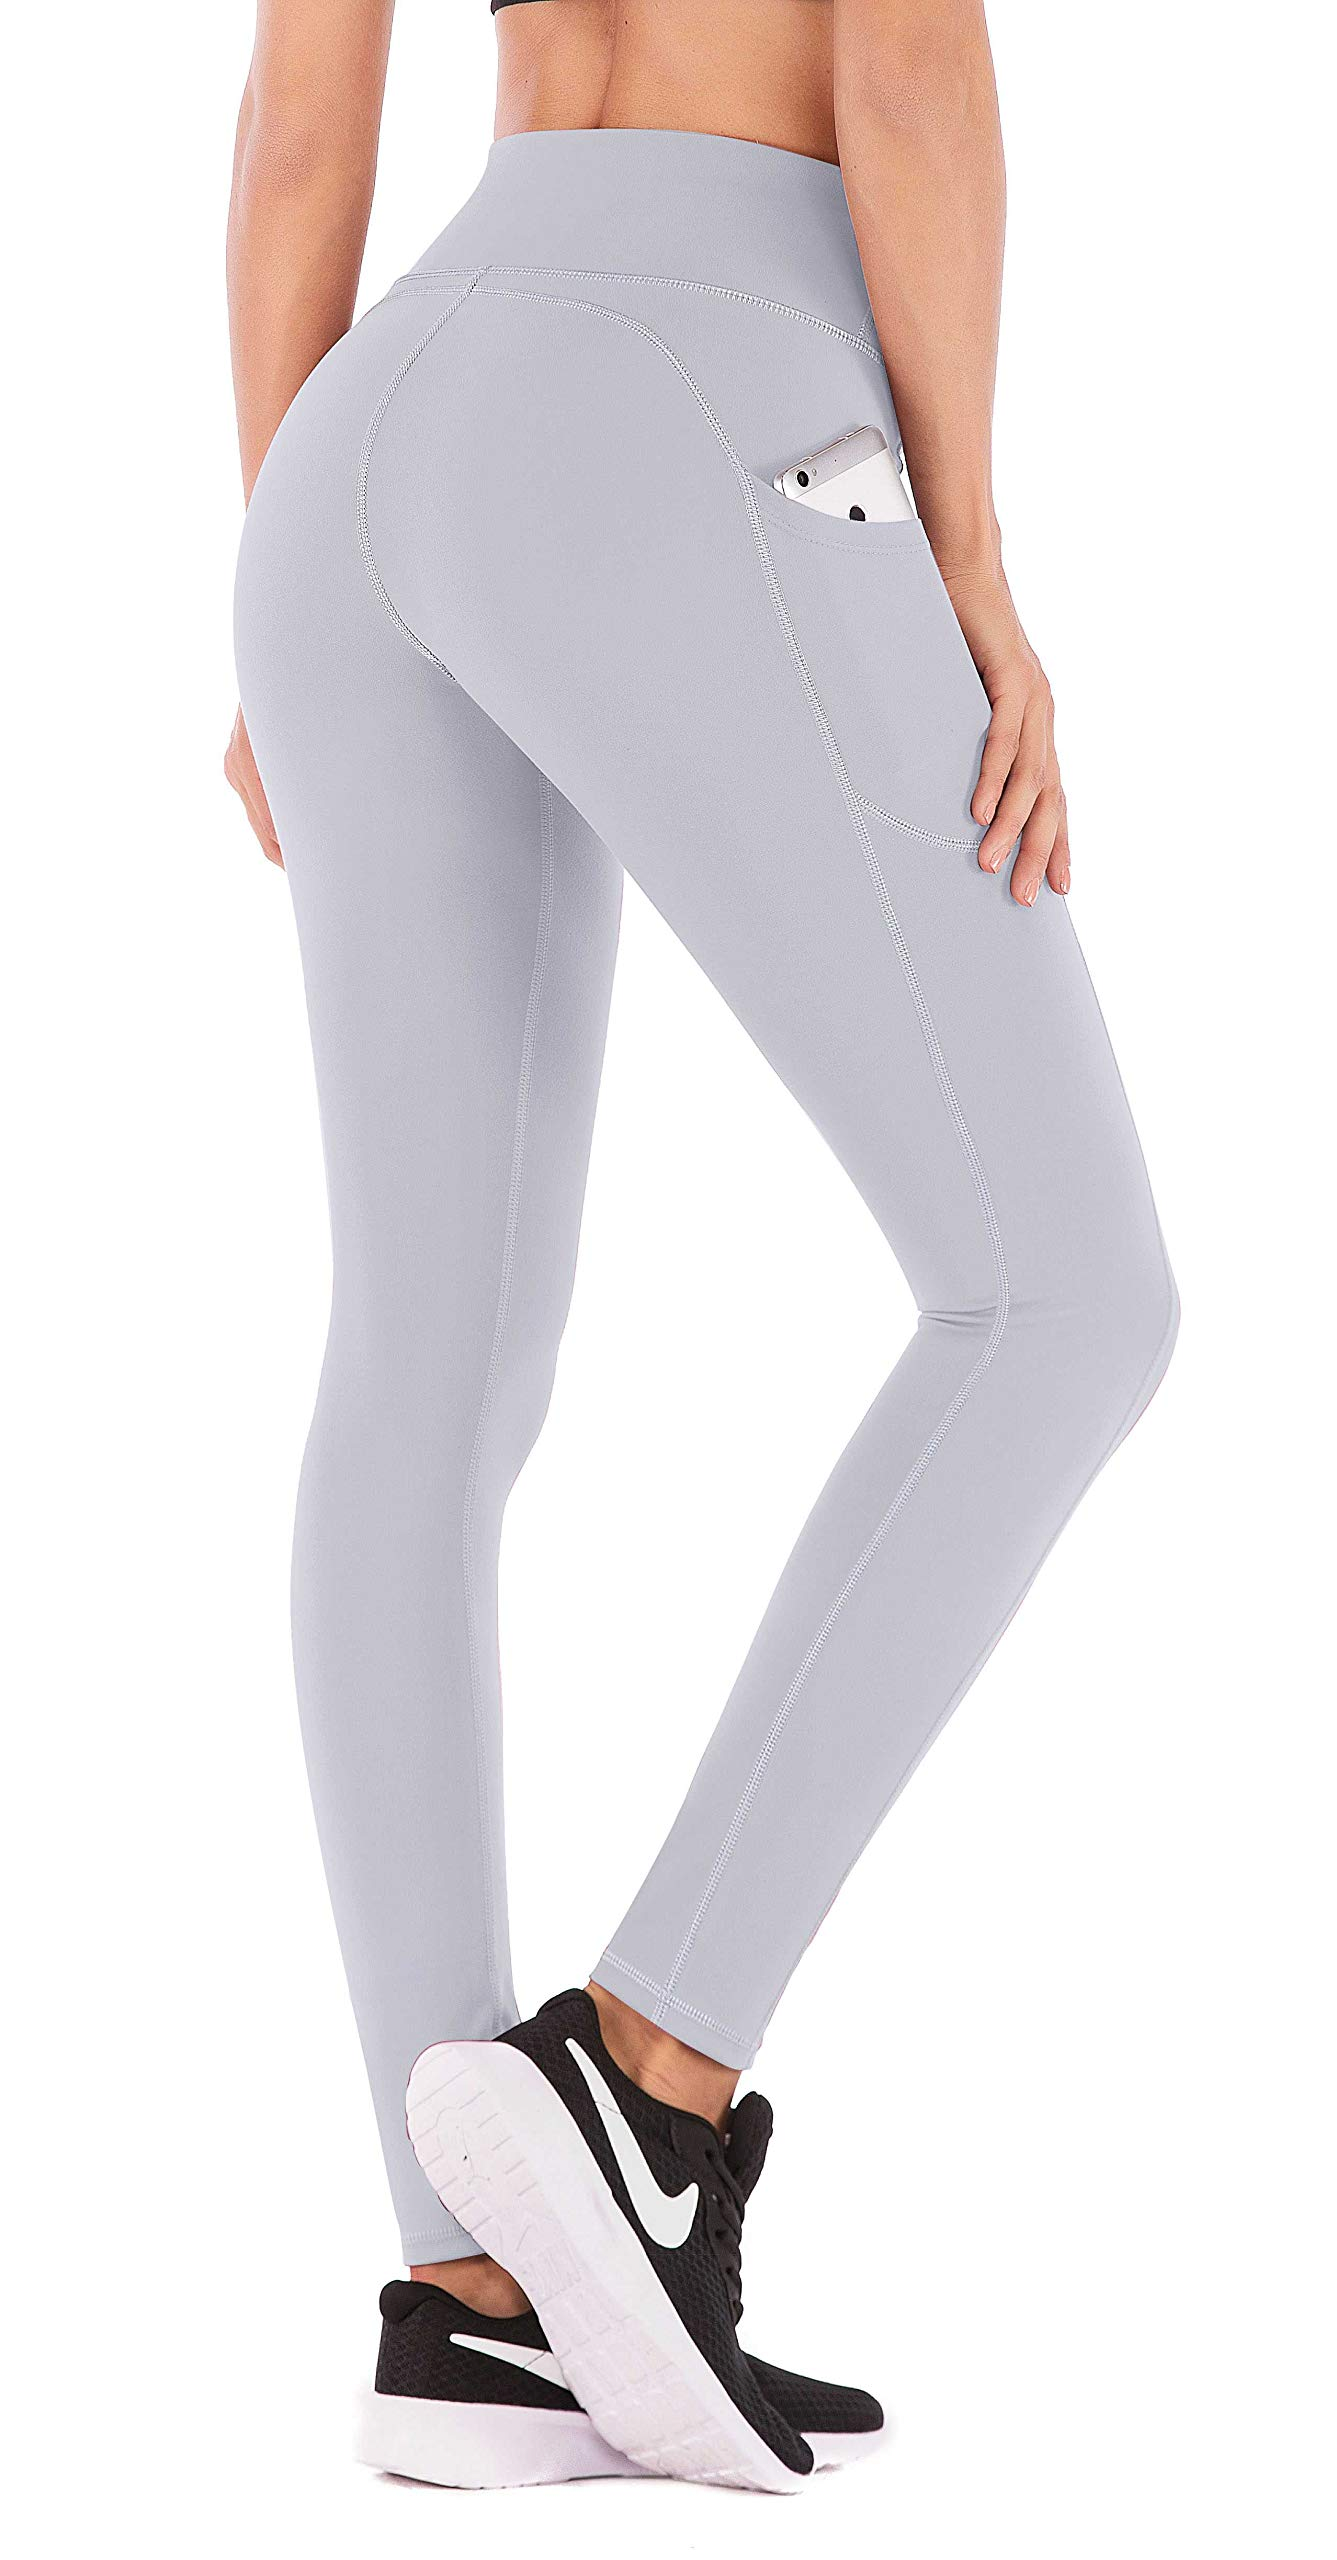 IUGA High Waist Yoga Pants with Pockets, Tummy Control, Workout Pants for Women 4 Way Stretch Yoga Leggings with Pockets (840 Light Gray, X-Large) by IUGA